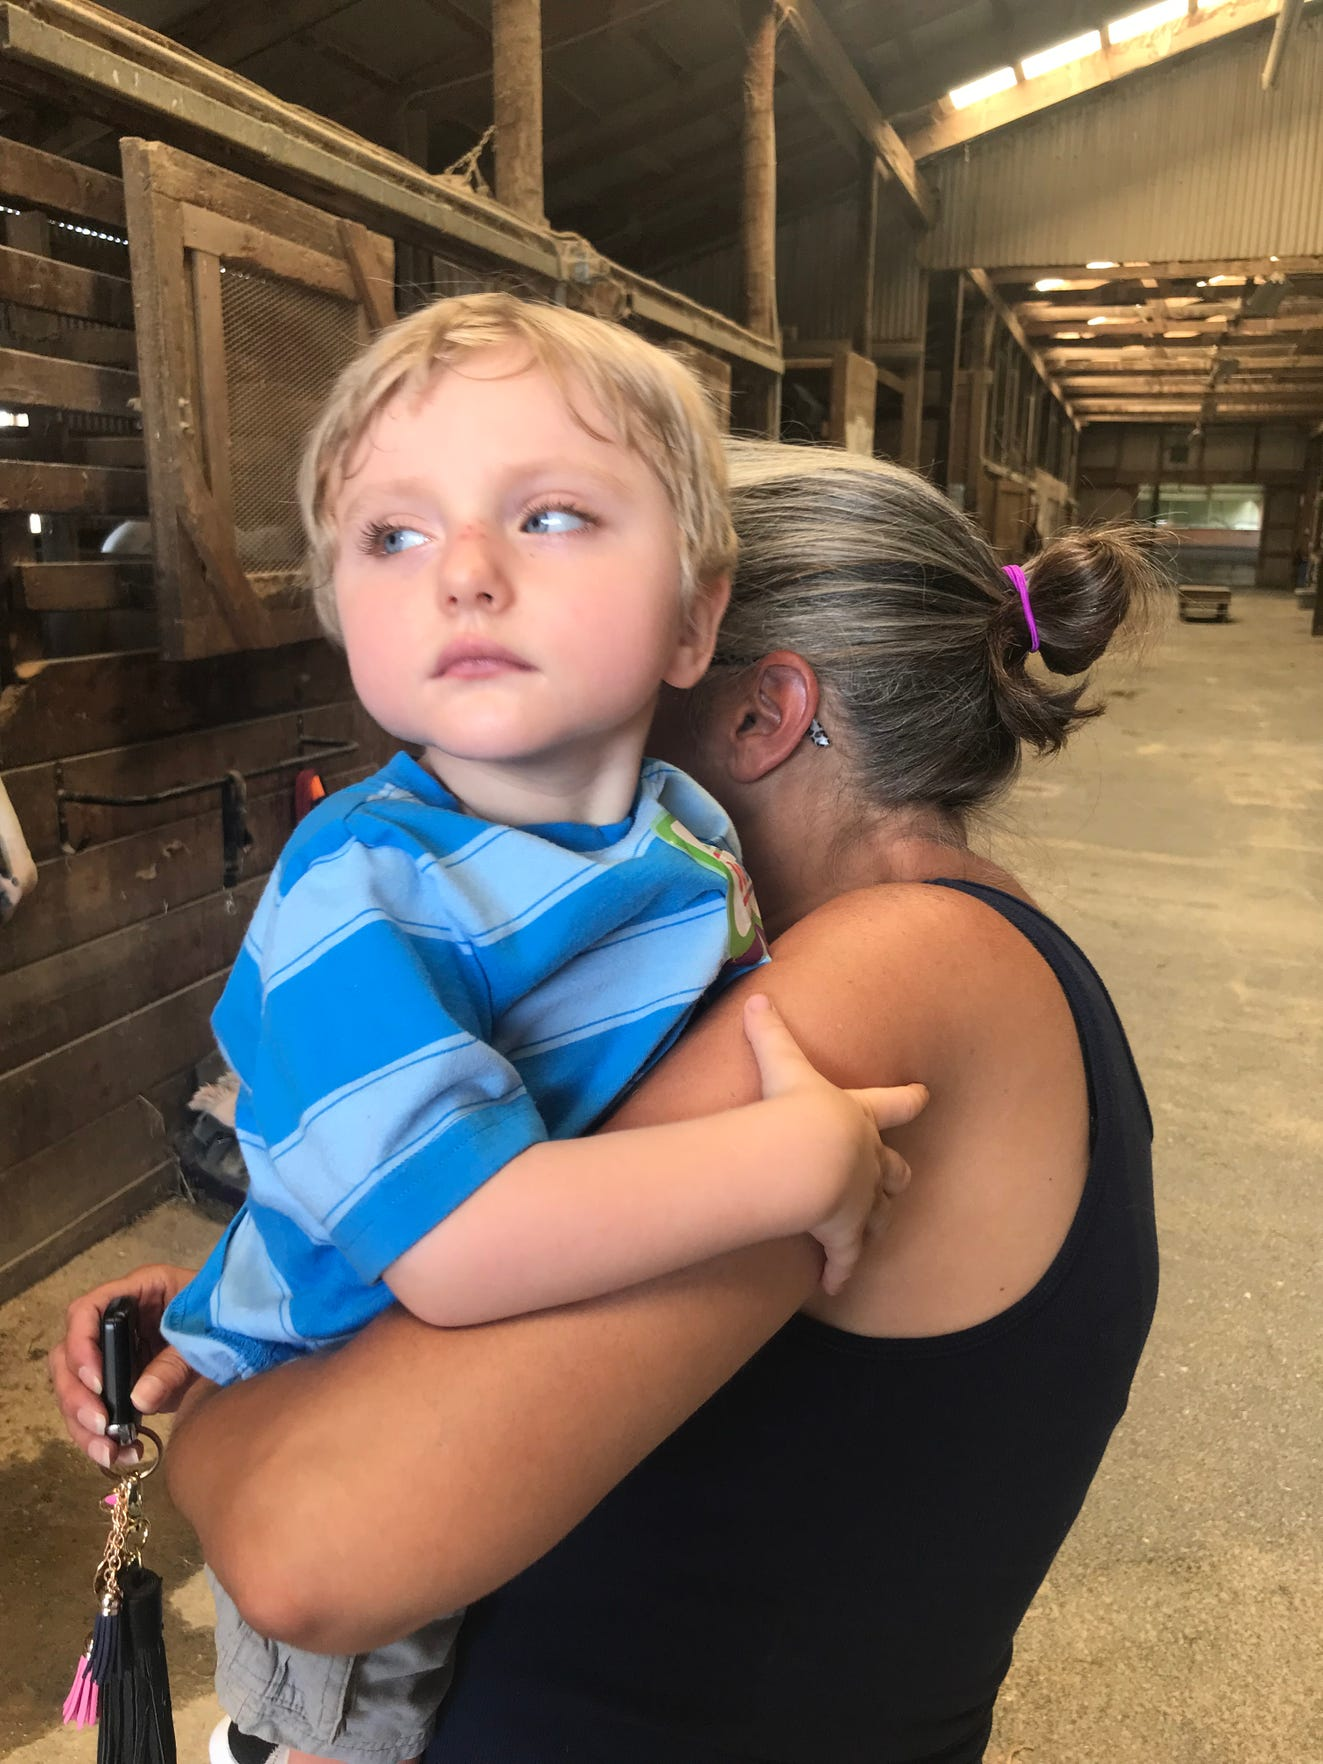 Teresa Hodge, in-home caregiver for Carson Tugman, 3, of Staunton, holds him while they visit horses at Cedar Creek Stables. Tugman's grandmother Kelly Howe says Hodge is very shy and doesn't like to have her picture taken.